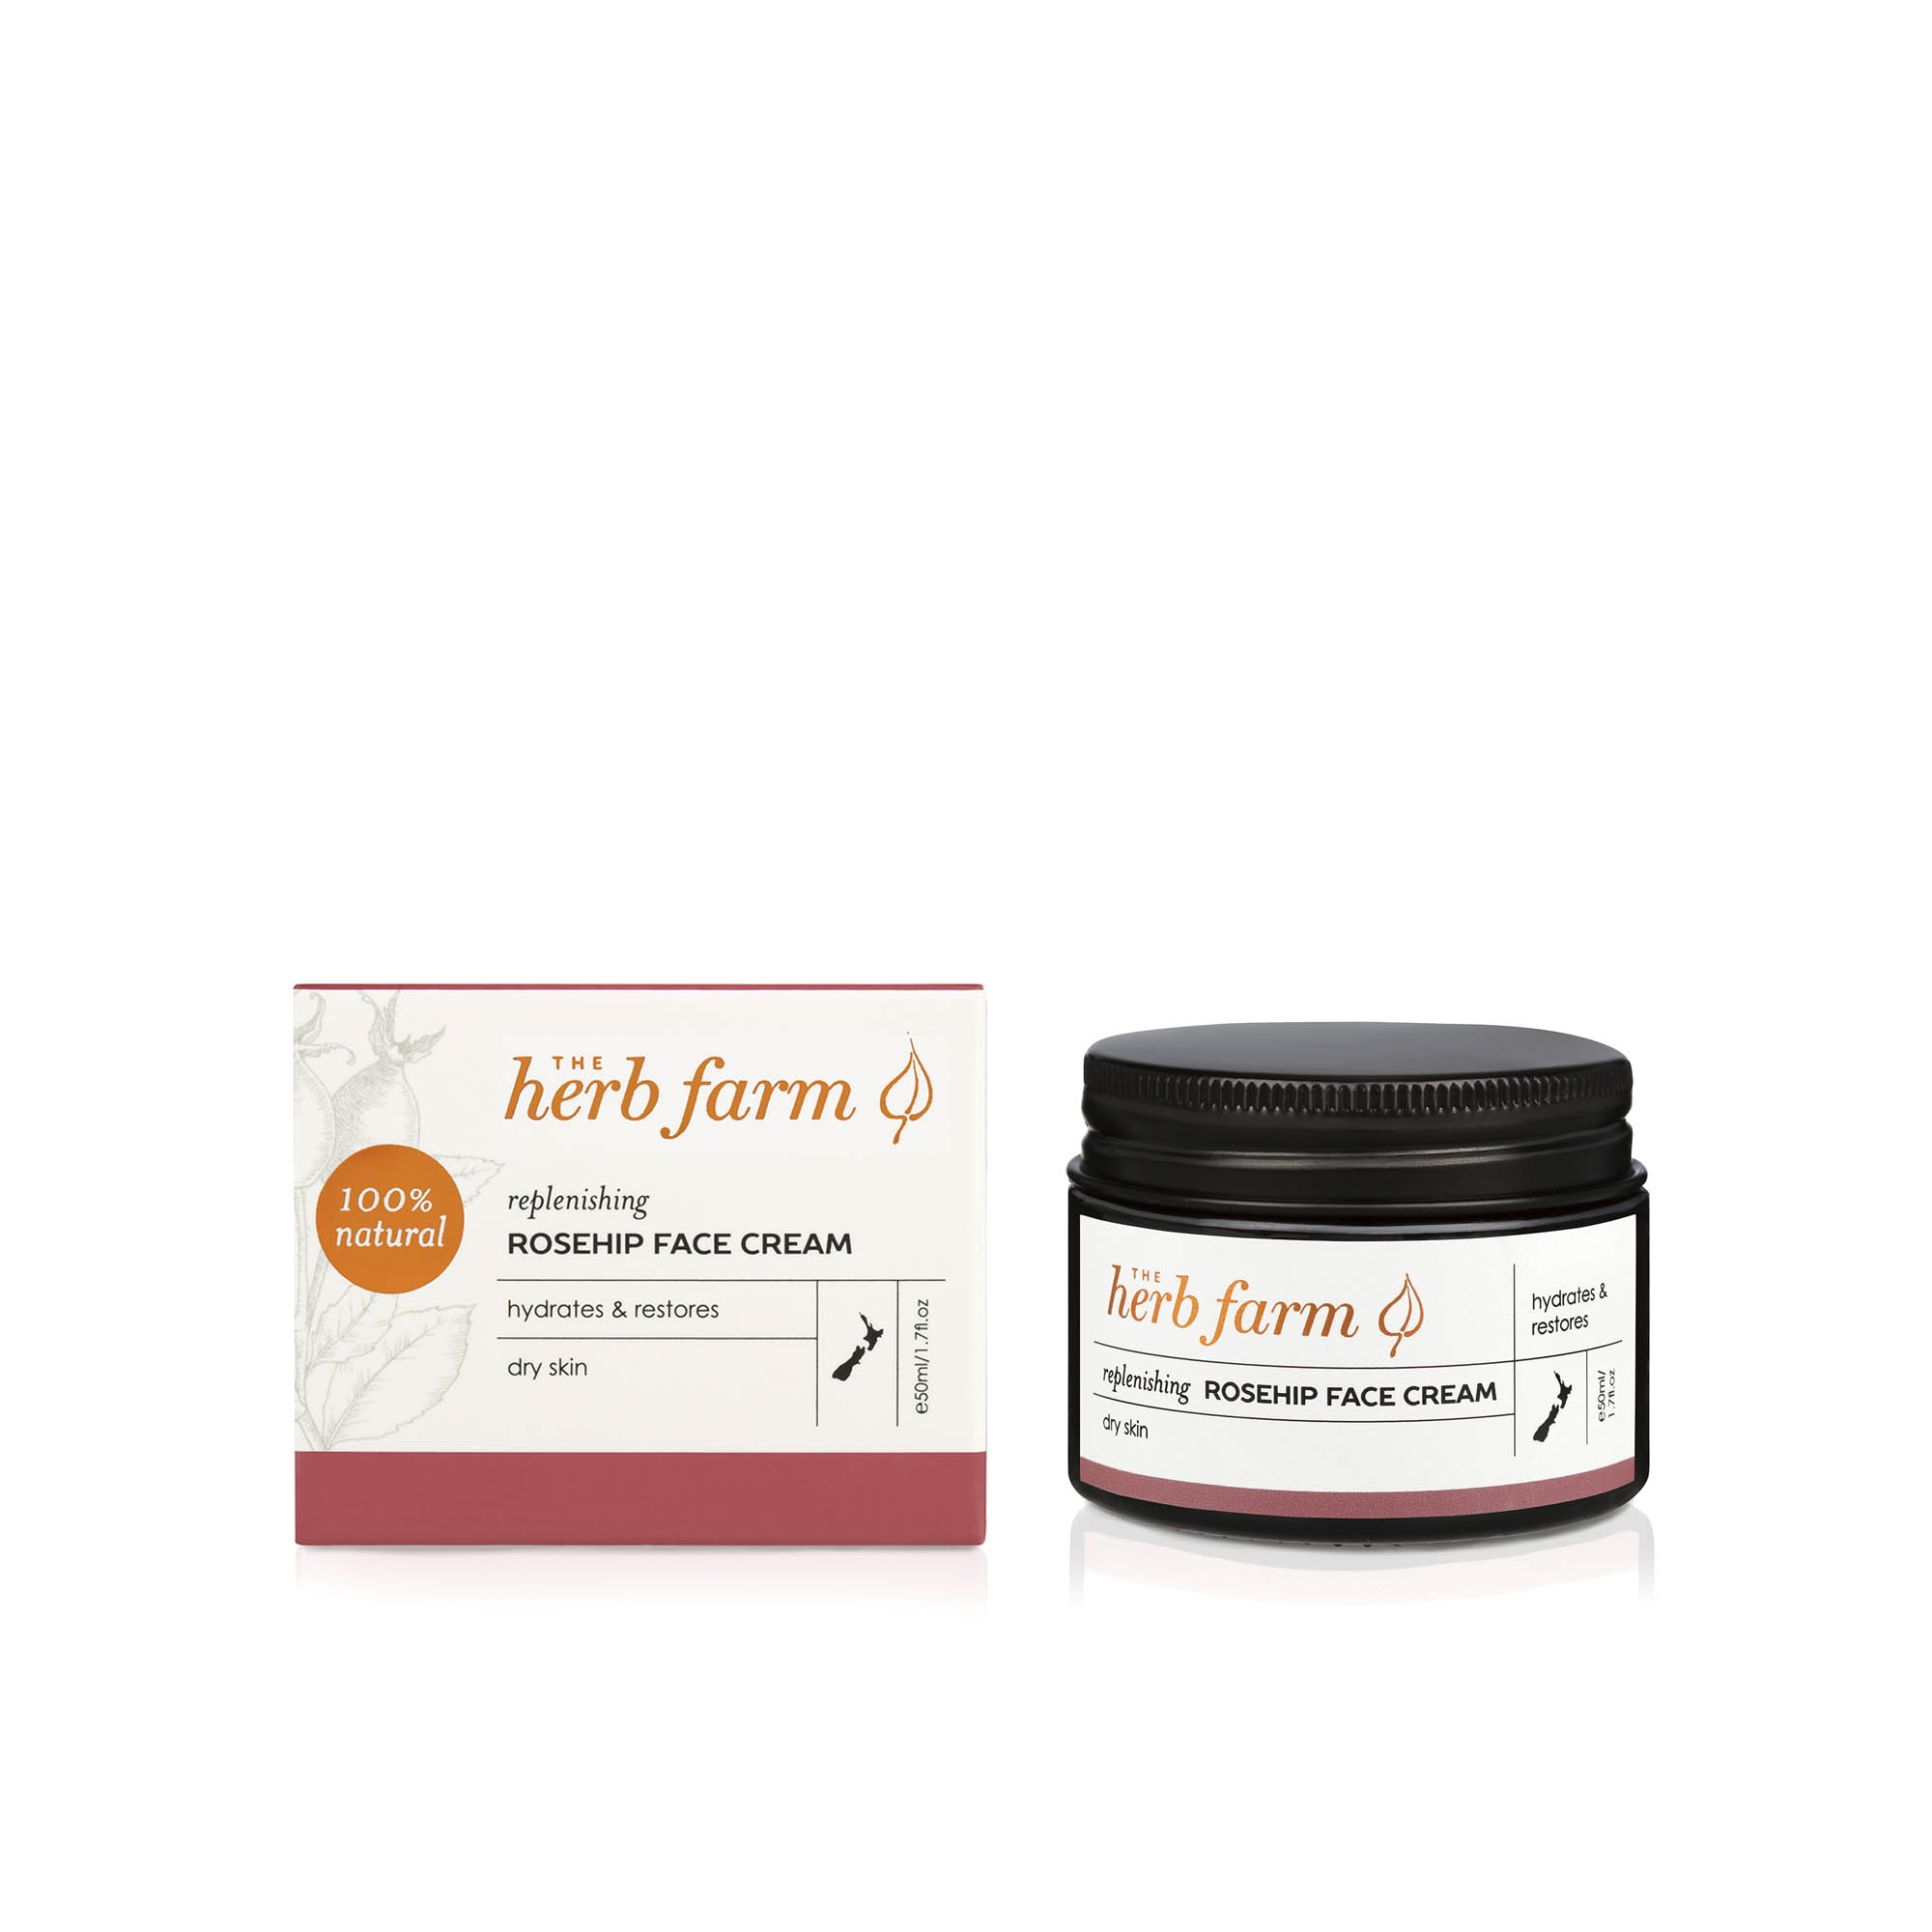 The Herb Farm Replenishing Rosehip Face Cream